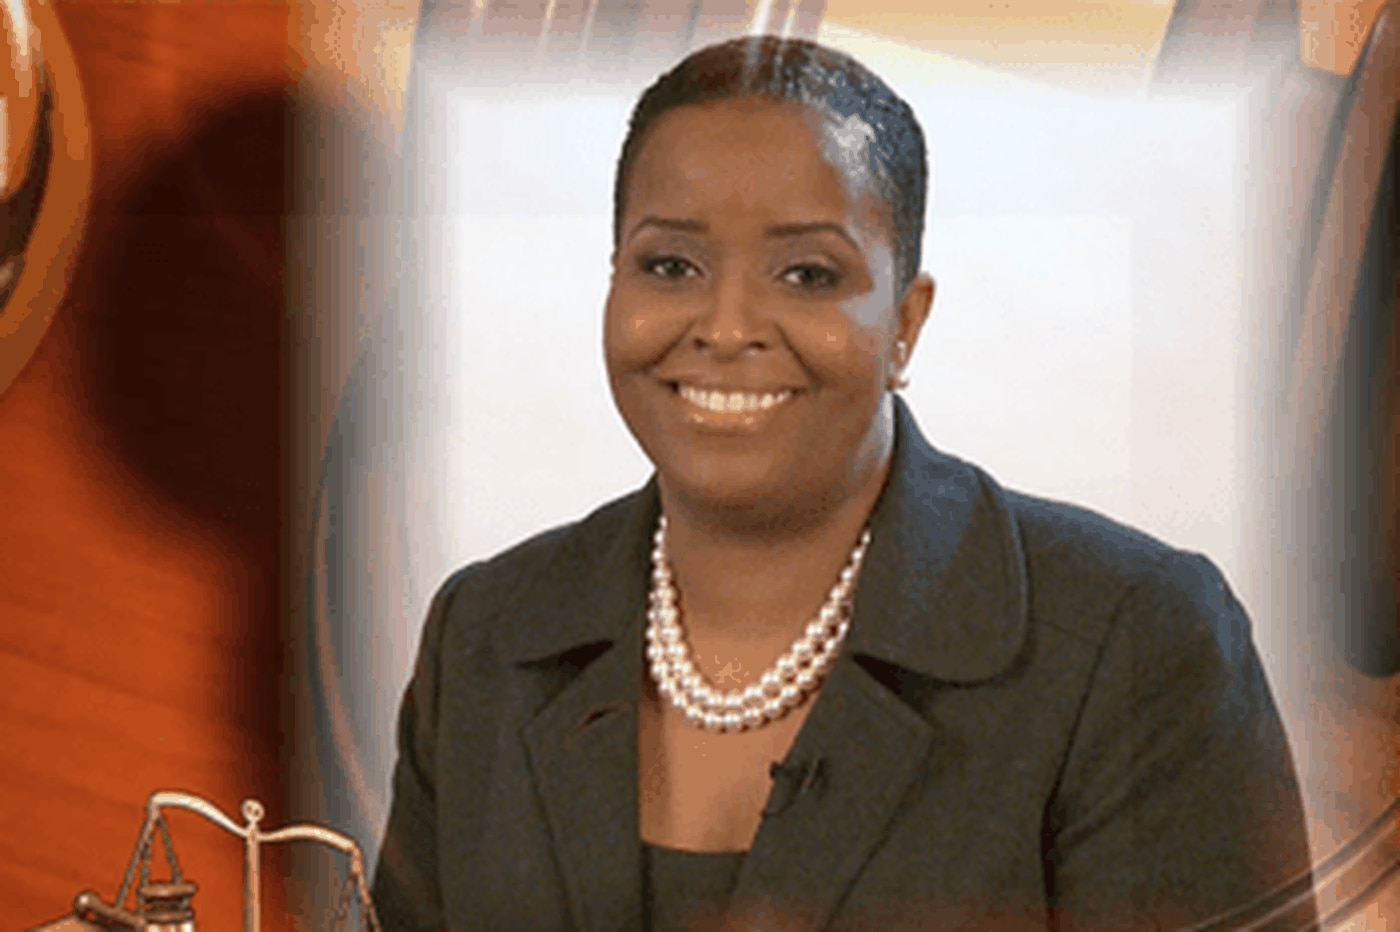 Pa. board moves to suspend Philly judge Lyris Younge for 'condescending and undignified' demeanor in Family Court